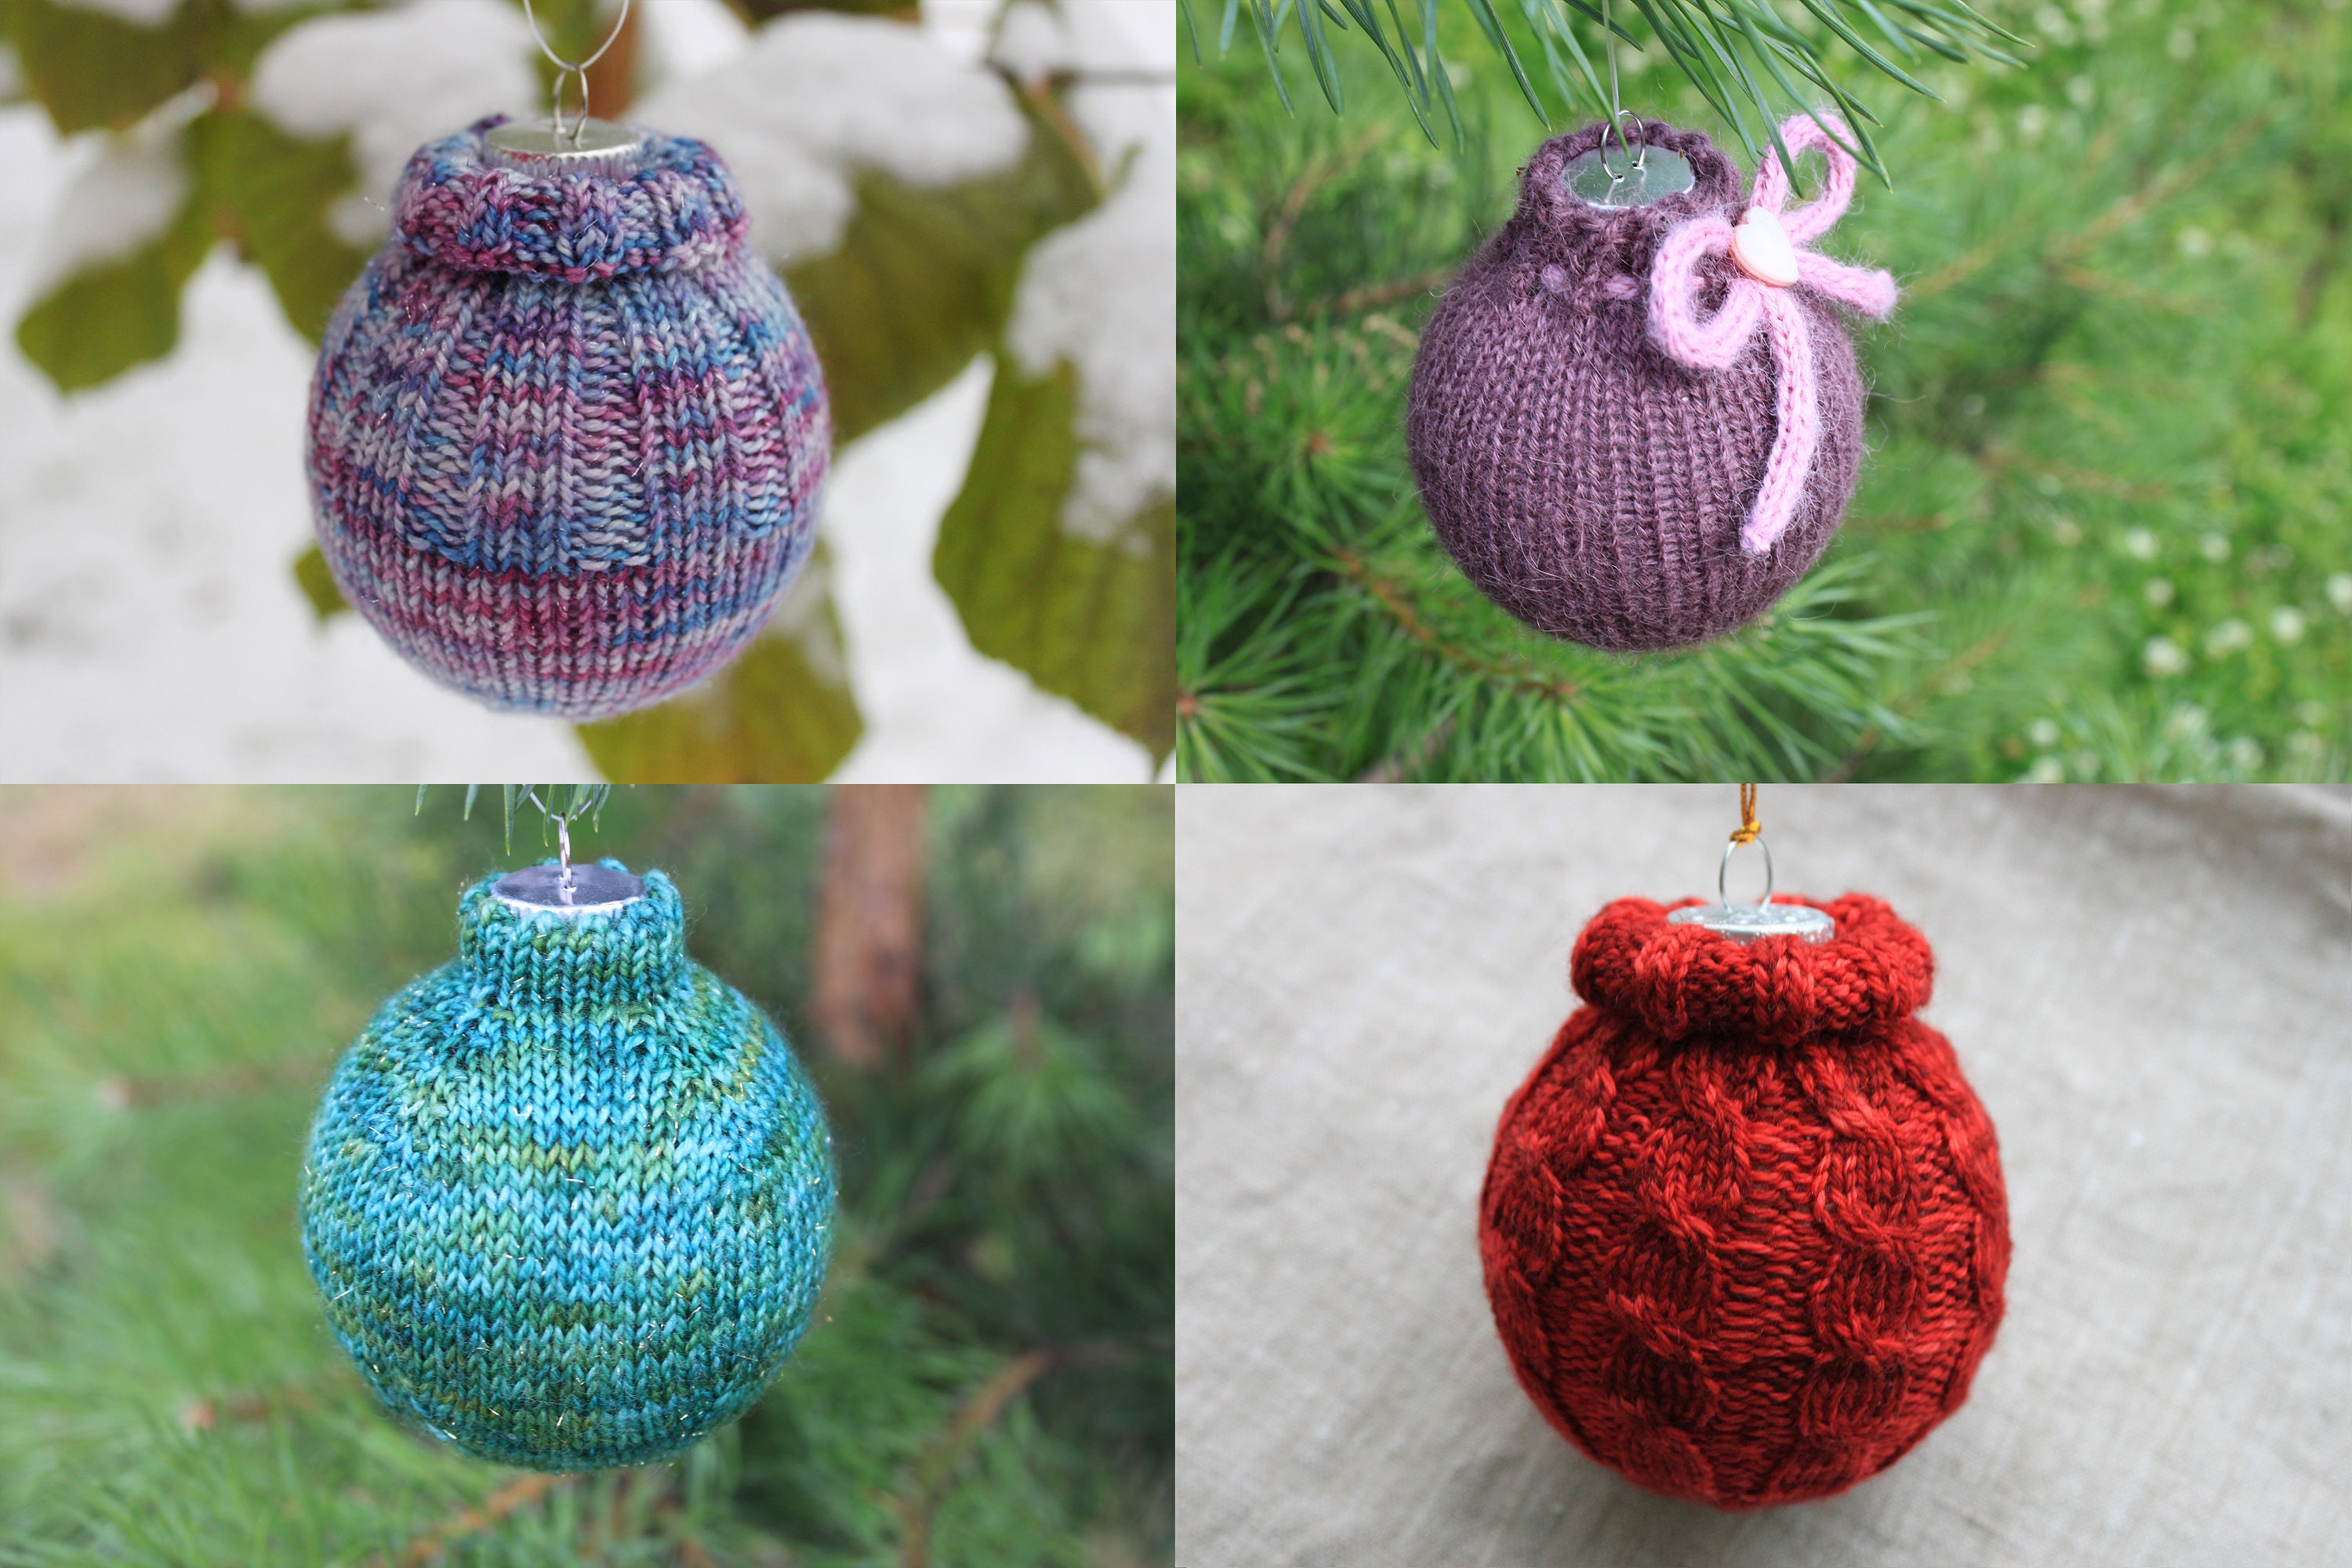 KNITTING PATTERN BUNDLE Knitted Christmas Ornaments Cozy | Etsy